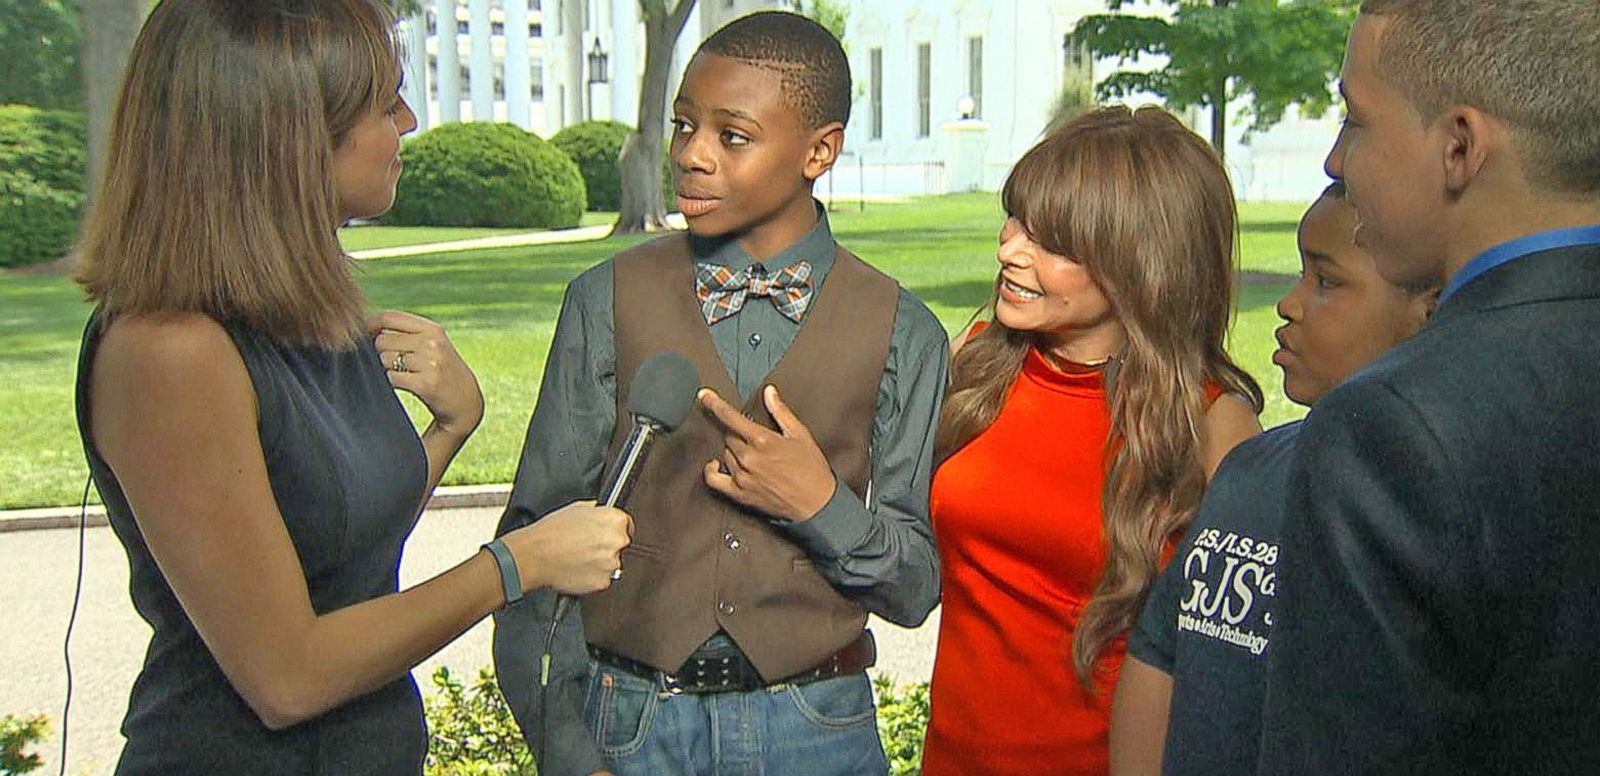 VIDEO: Paula Abdul and the Performing Artists of the Future